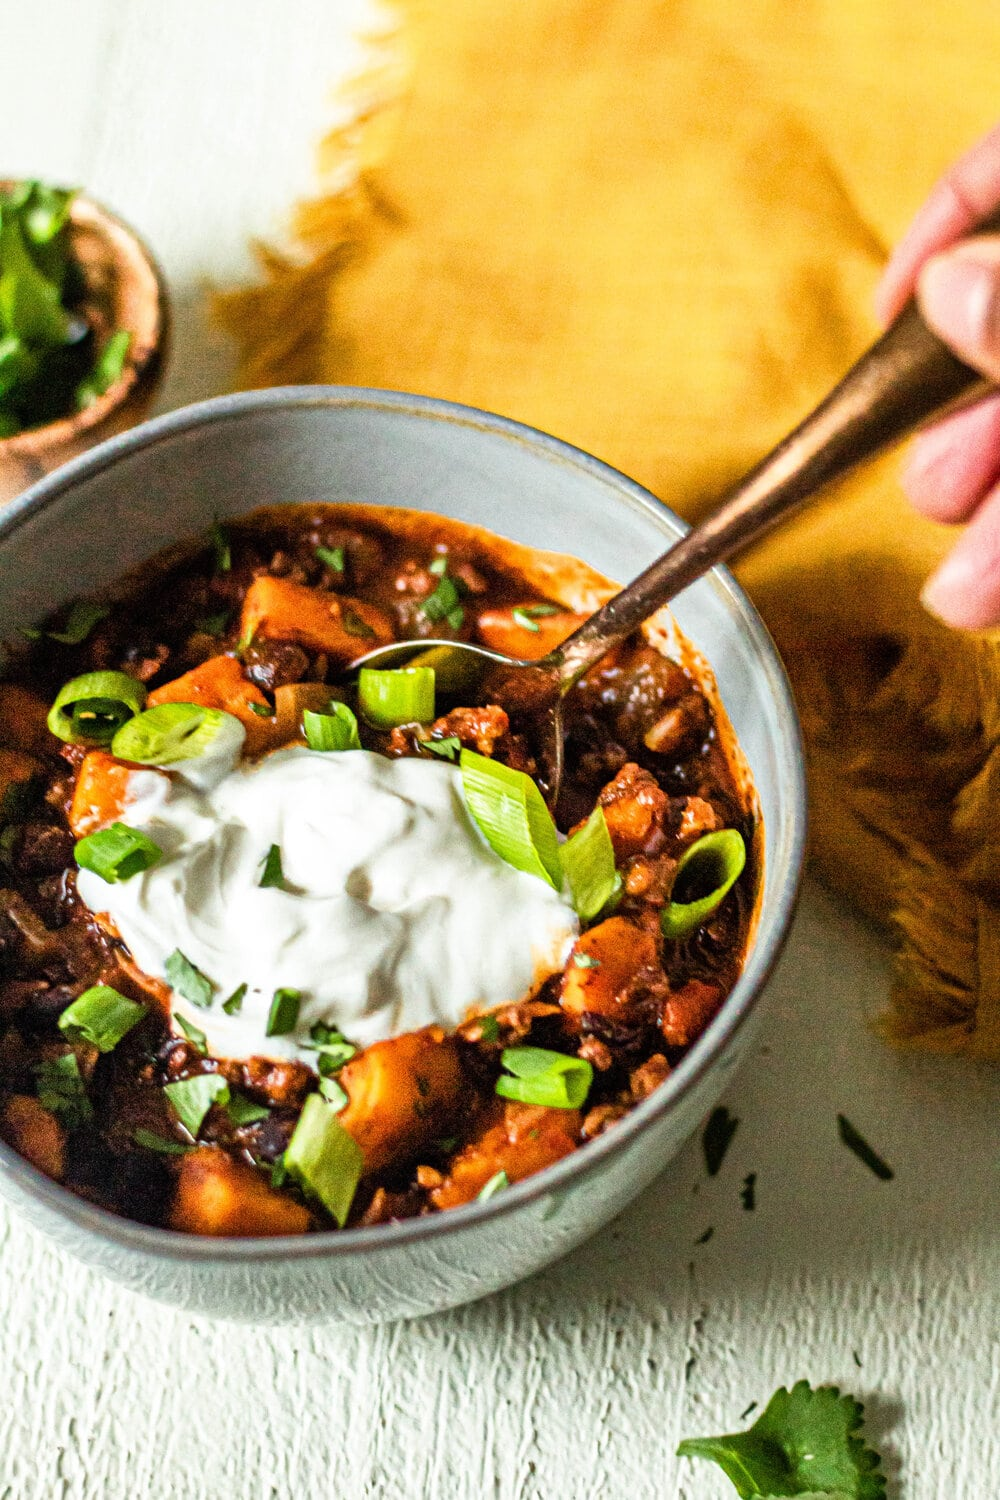 Sweet Potato and Black Bean Chili (Gluten-Free + Whole30 Option)